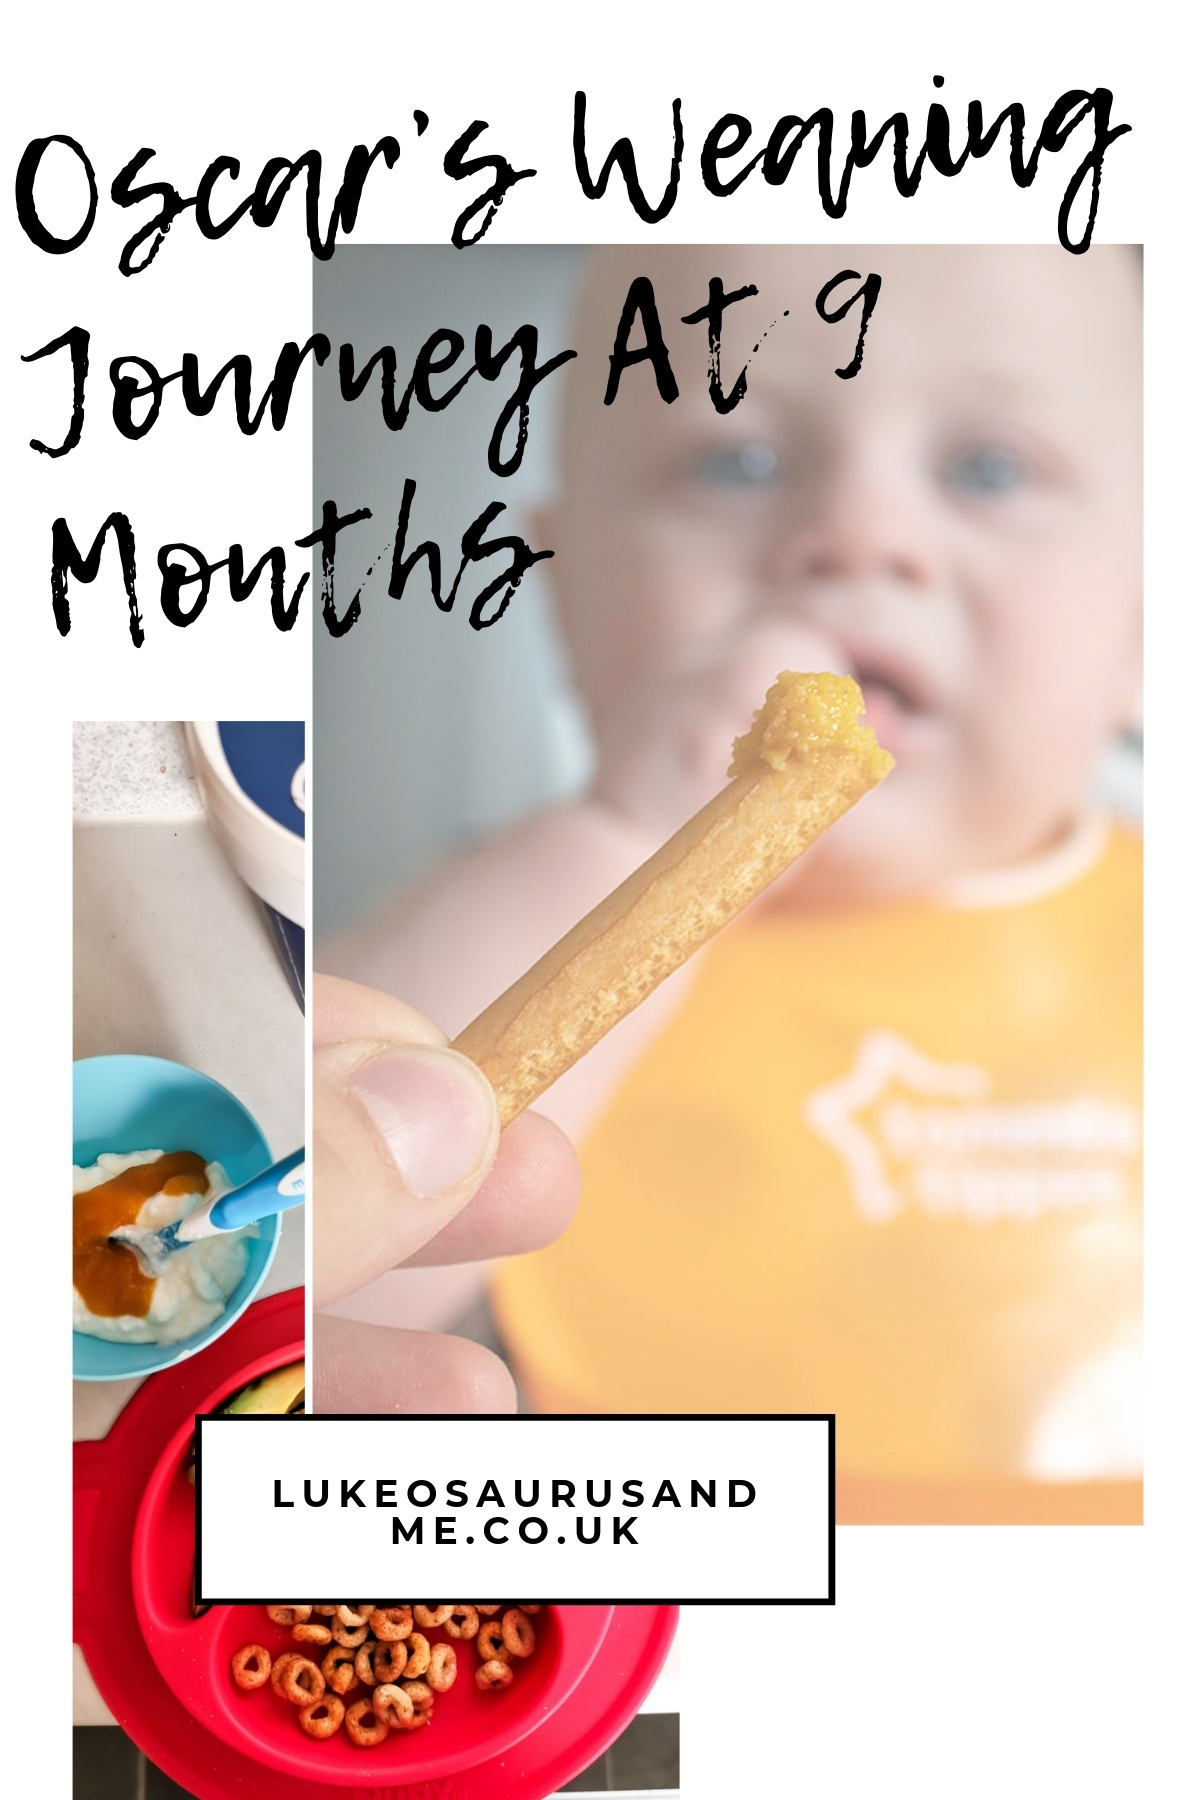 Oscar's Baby Led Weaning Journey At 9 Months at https://lukeosaurusandme.co.uk